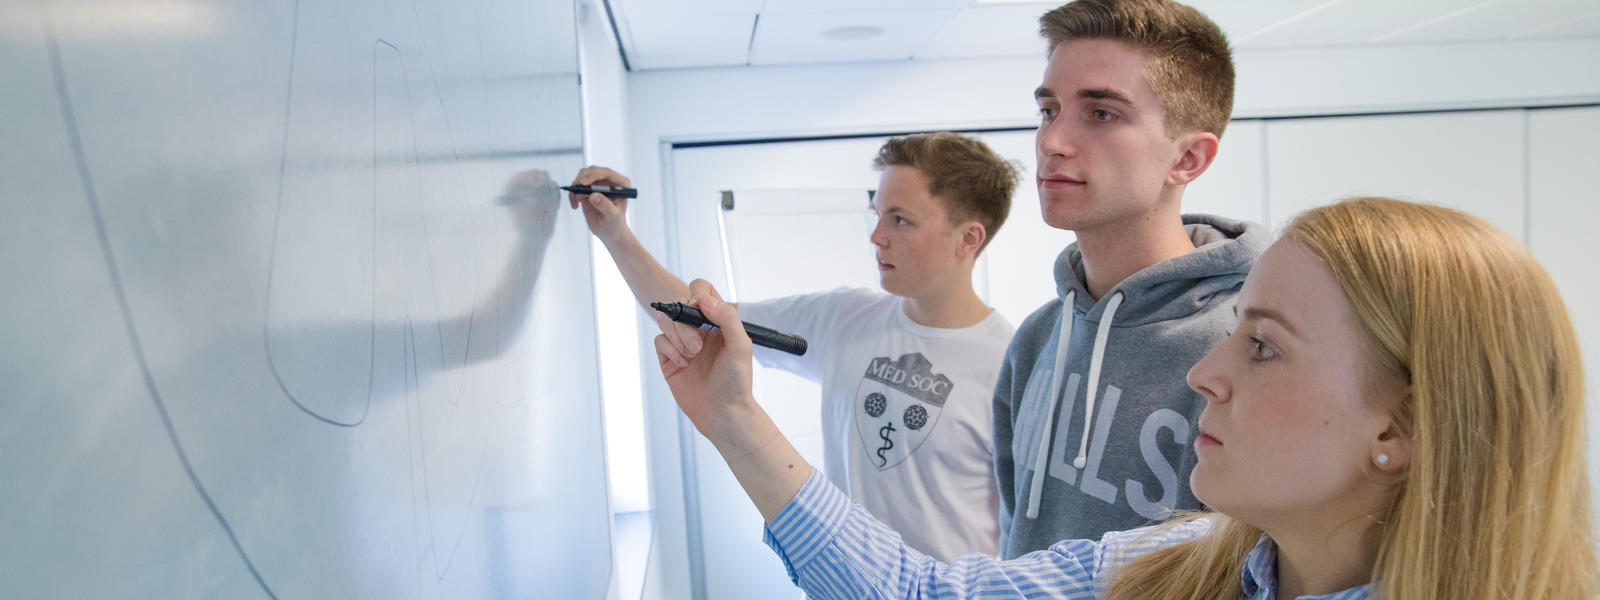 Three students work on a whiteboard